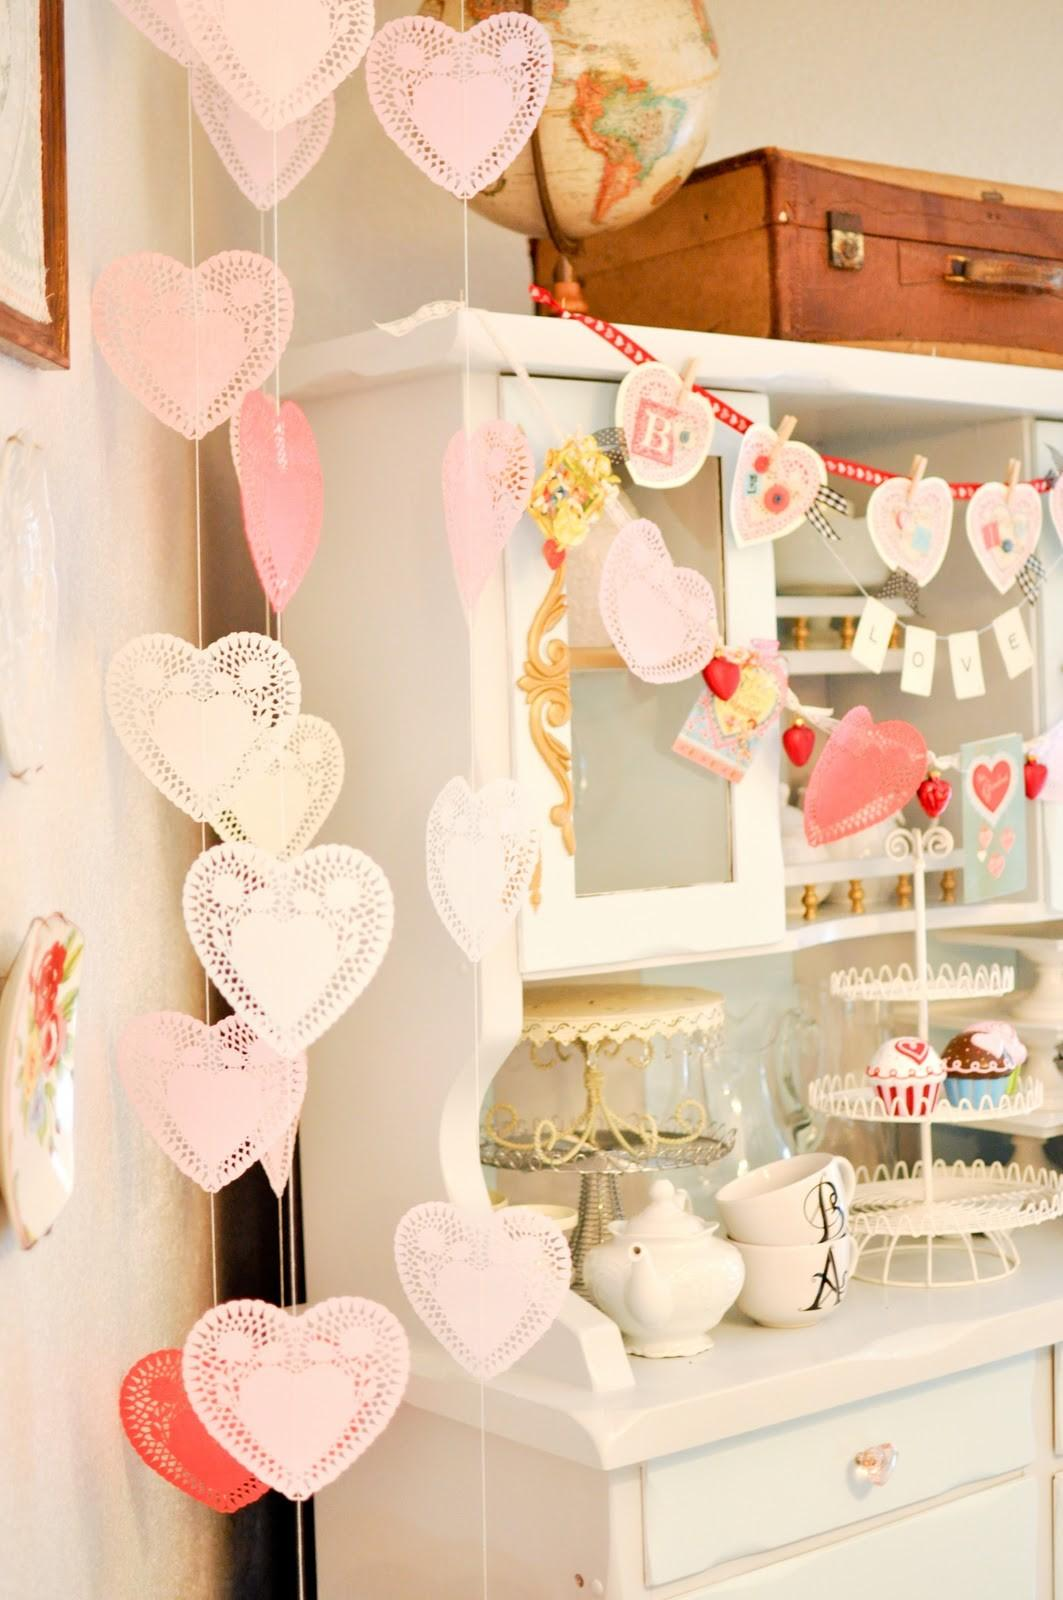 Valentine Day Decorations Ideas Your Home